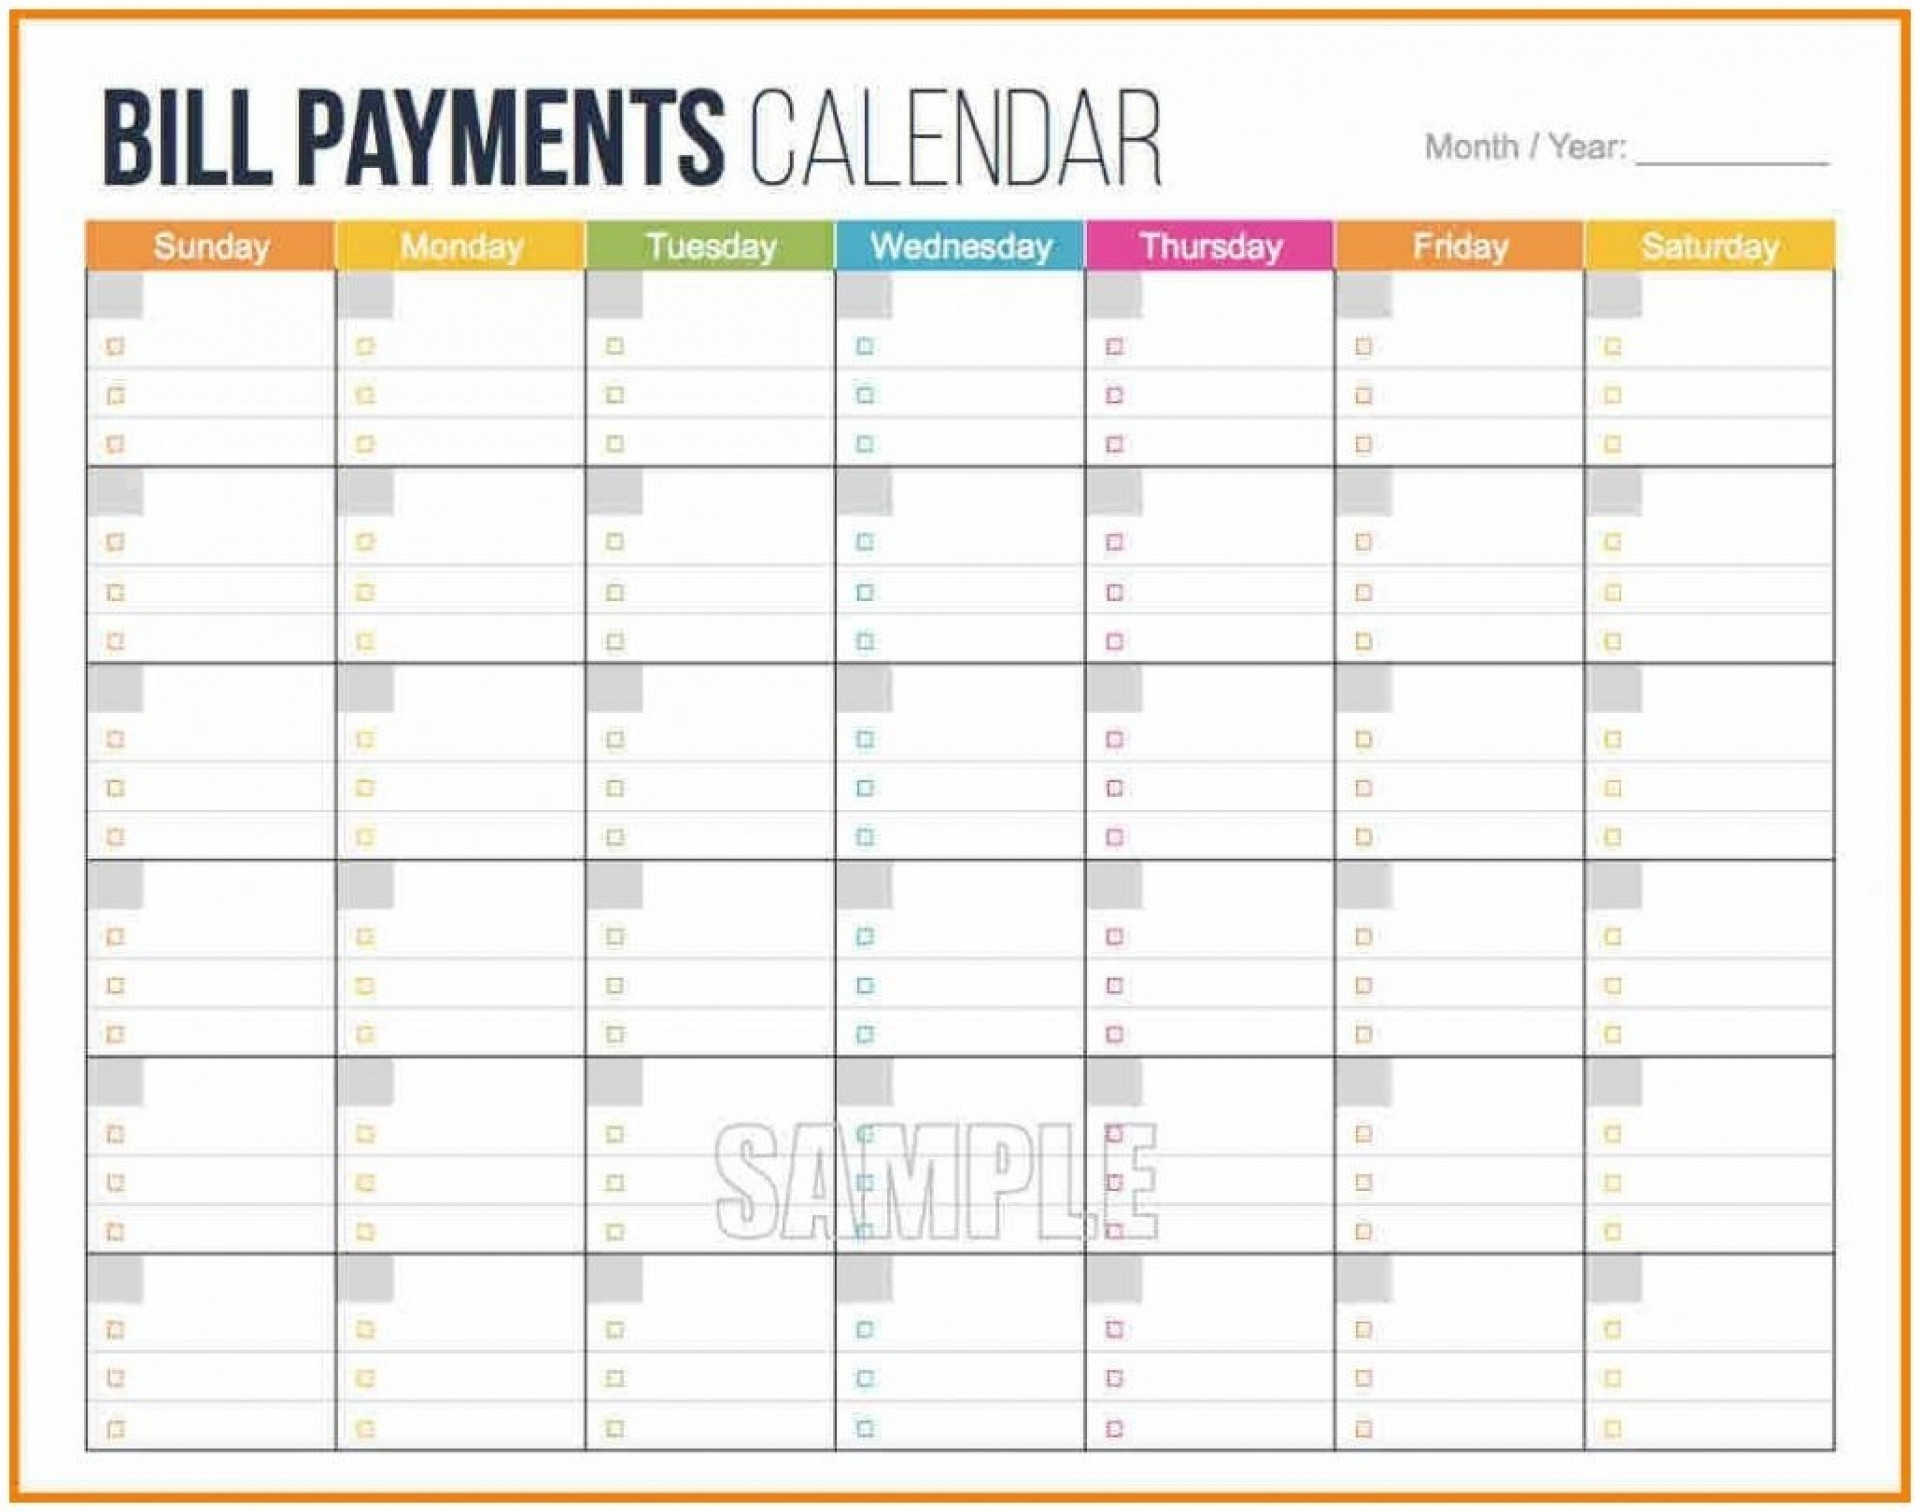 015 Template Ideas Billment Calendar Fitted Photo Schedule